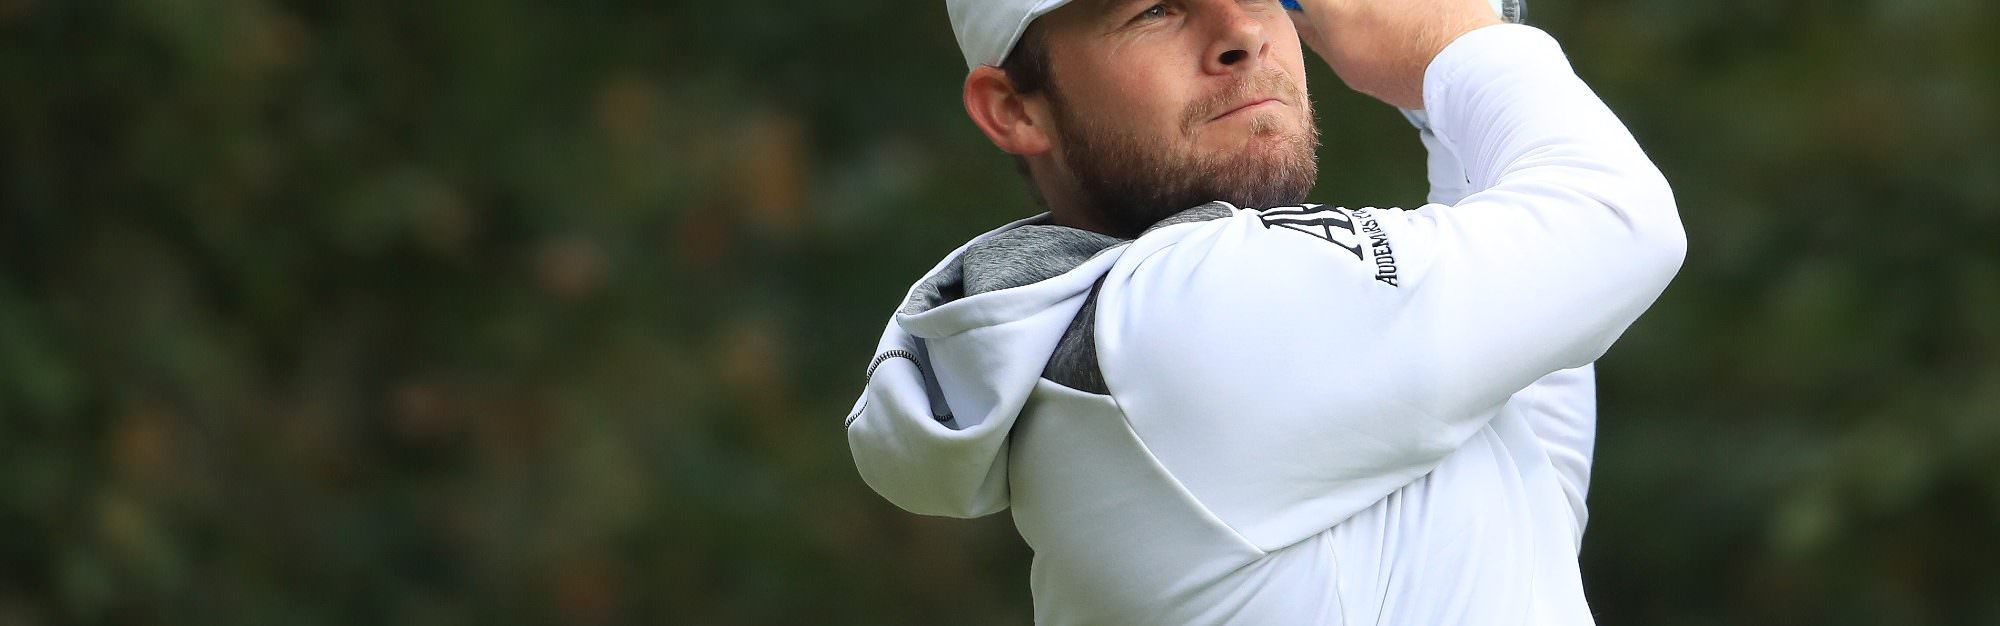 'Hats off to Hatton for wearing what he wants': Why image and appeal are key to R&A for golf's future